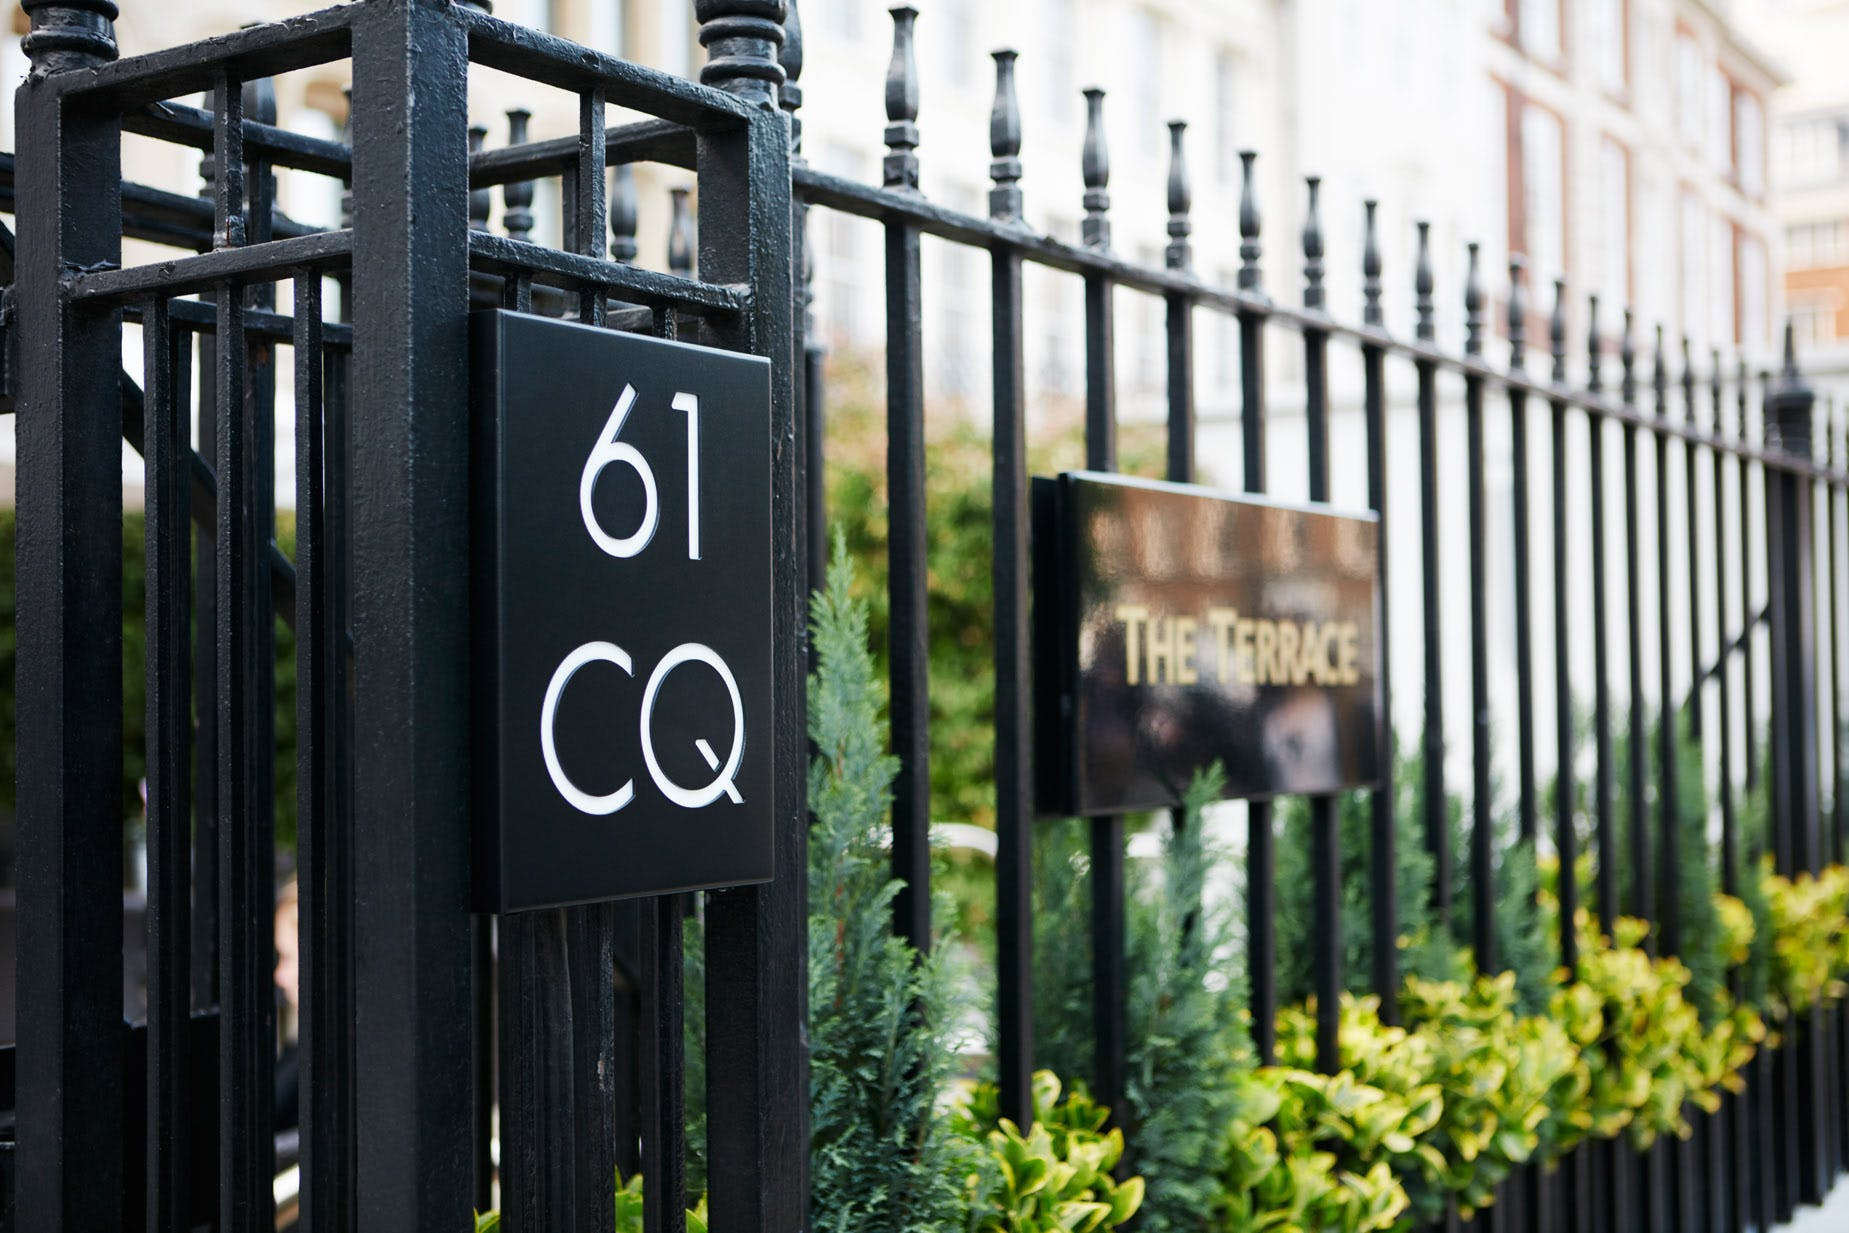 The Terrace at Club Quarters Hotel, Lincoln's Inn Field-Holborn, London